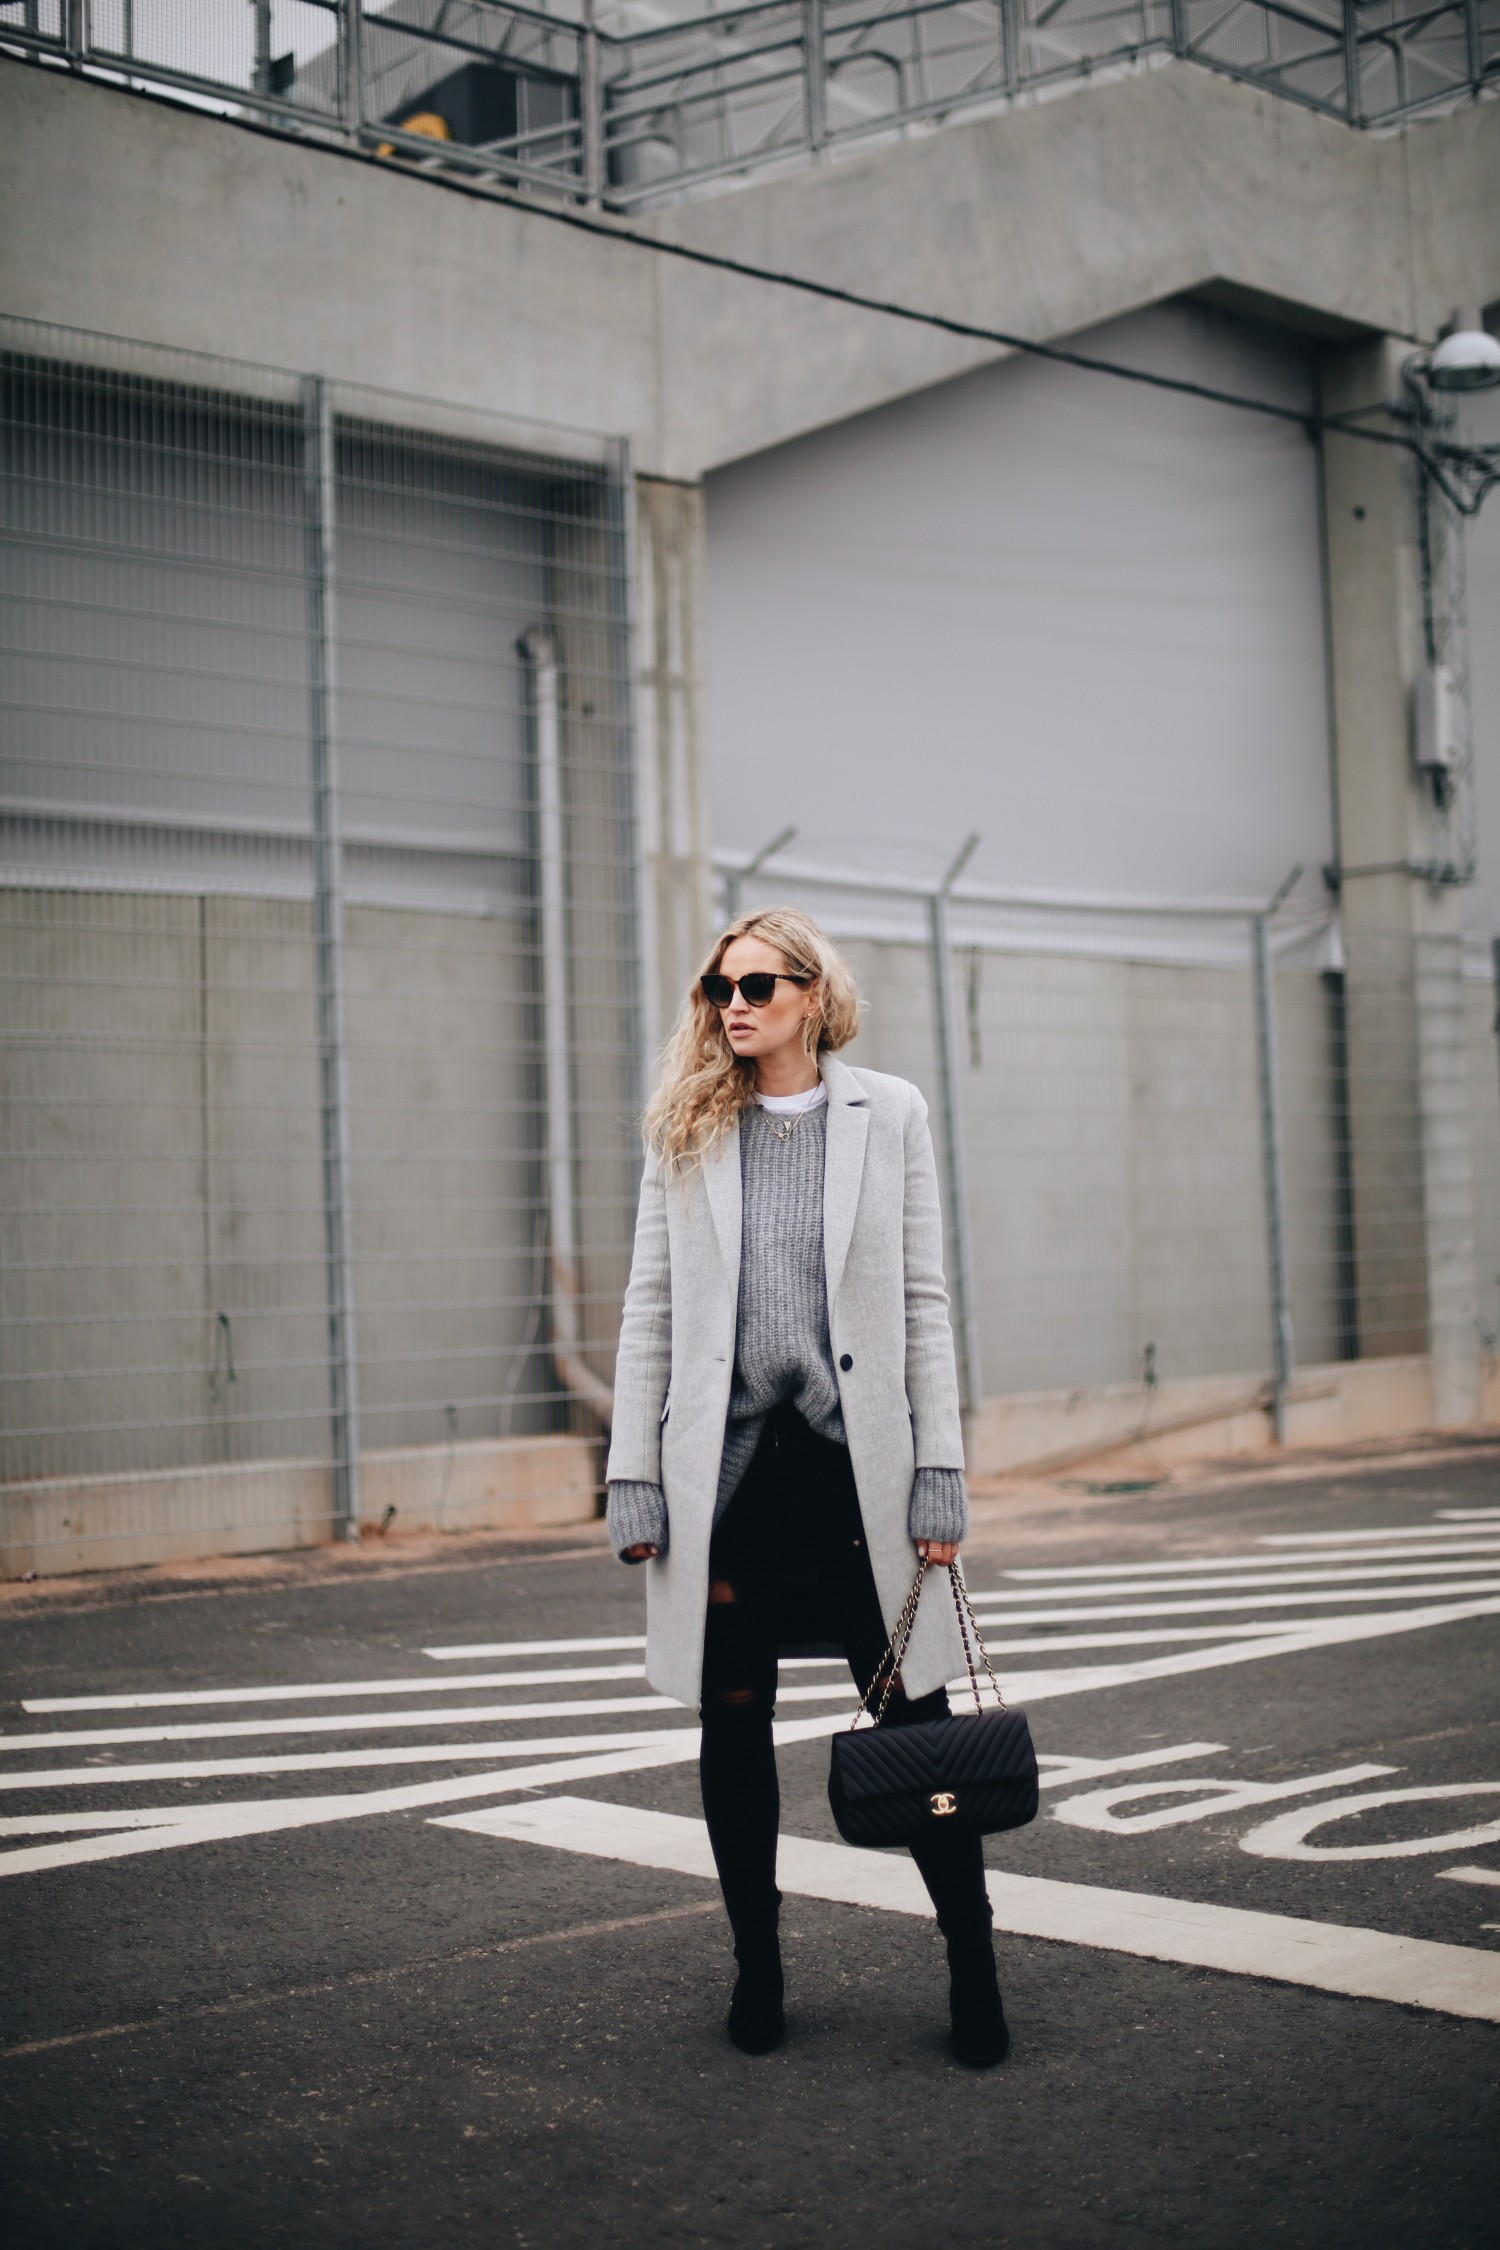 An oversized sweater is the perfect way to wear the extra long sleeves trend. Anouk Yve looks effortlessly stylish in this grey knit sweater and pale overcoat worn with distressed black jeans. Coat: America Retro, Knit: Cos, Tee: Asos, Jeans: Zara, Bag: Chanel.